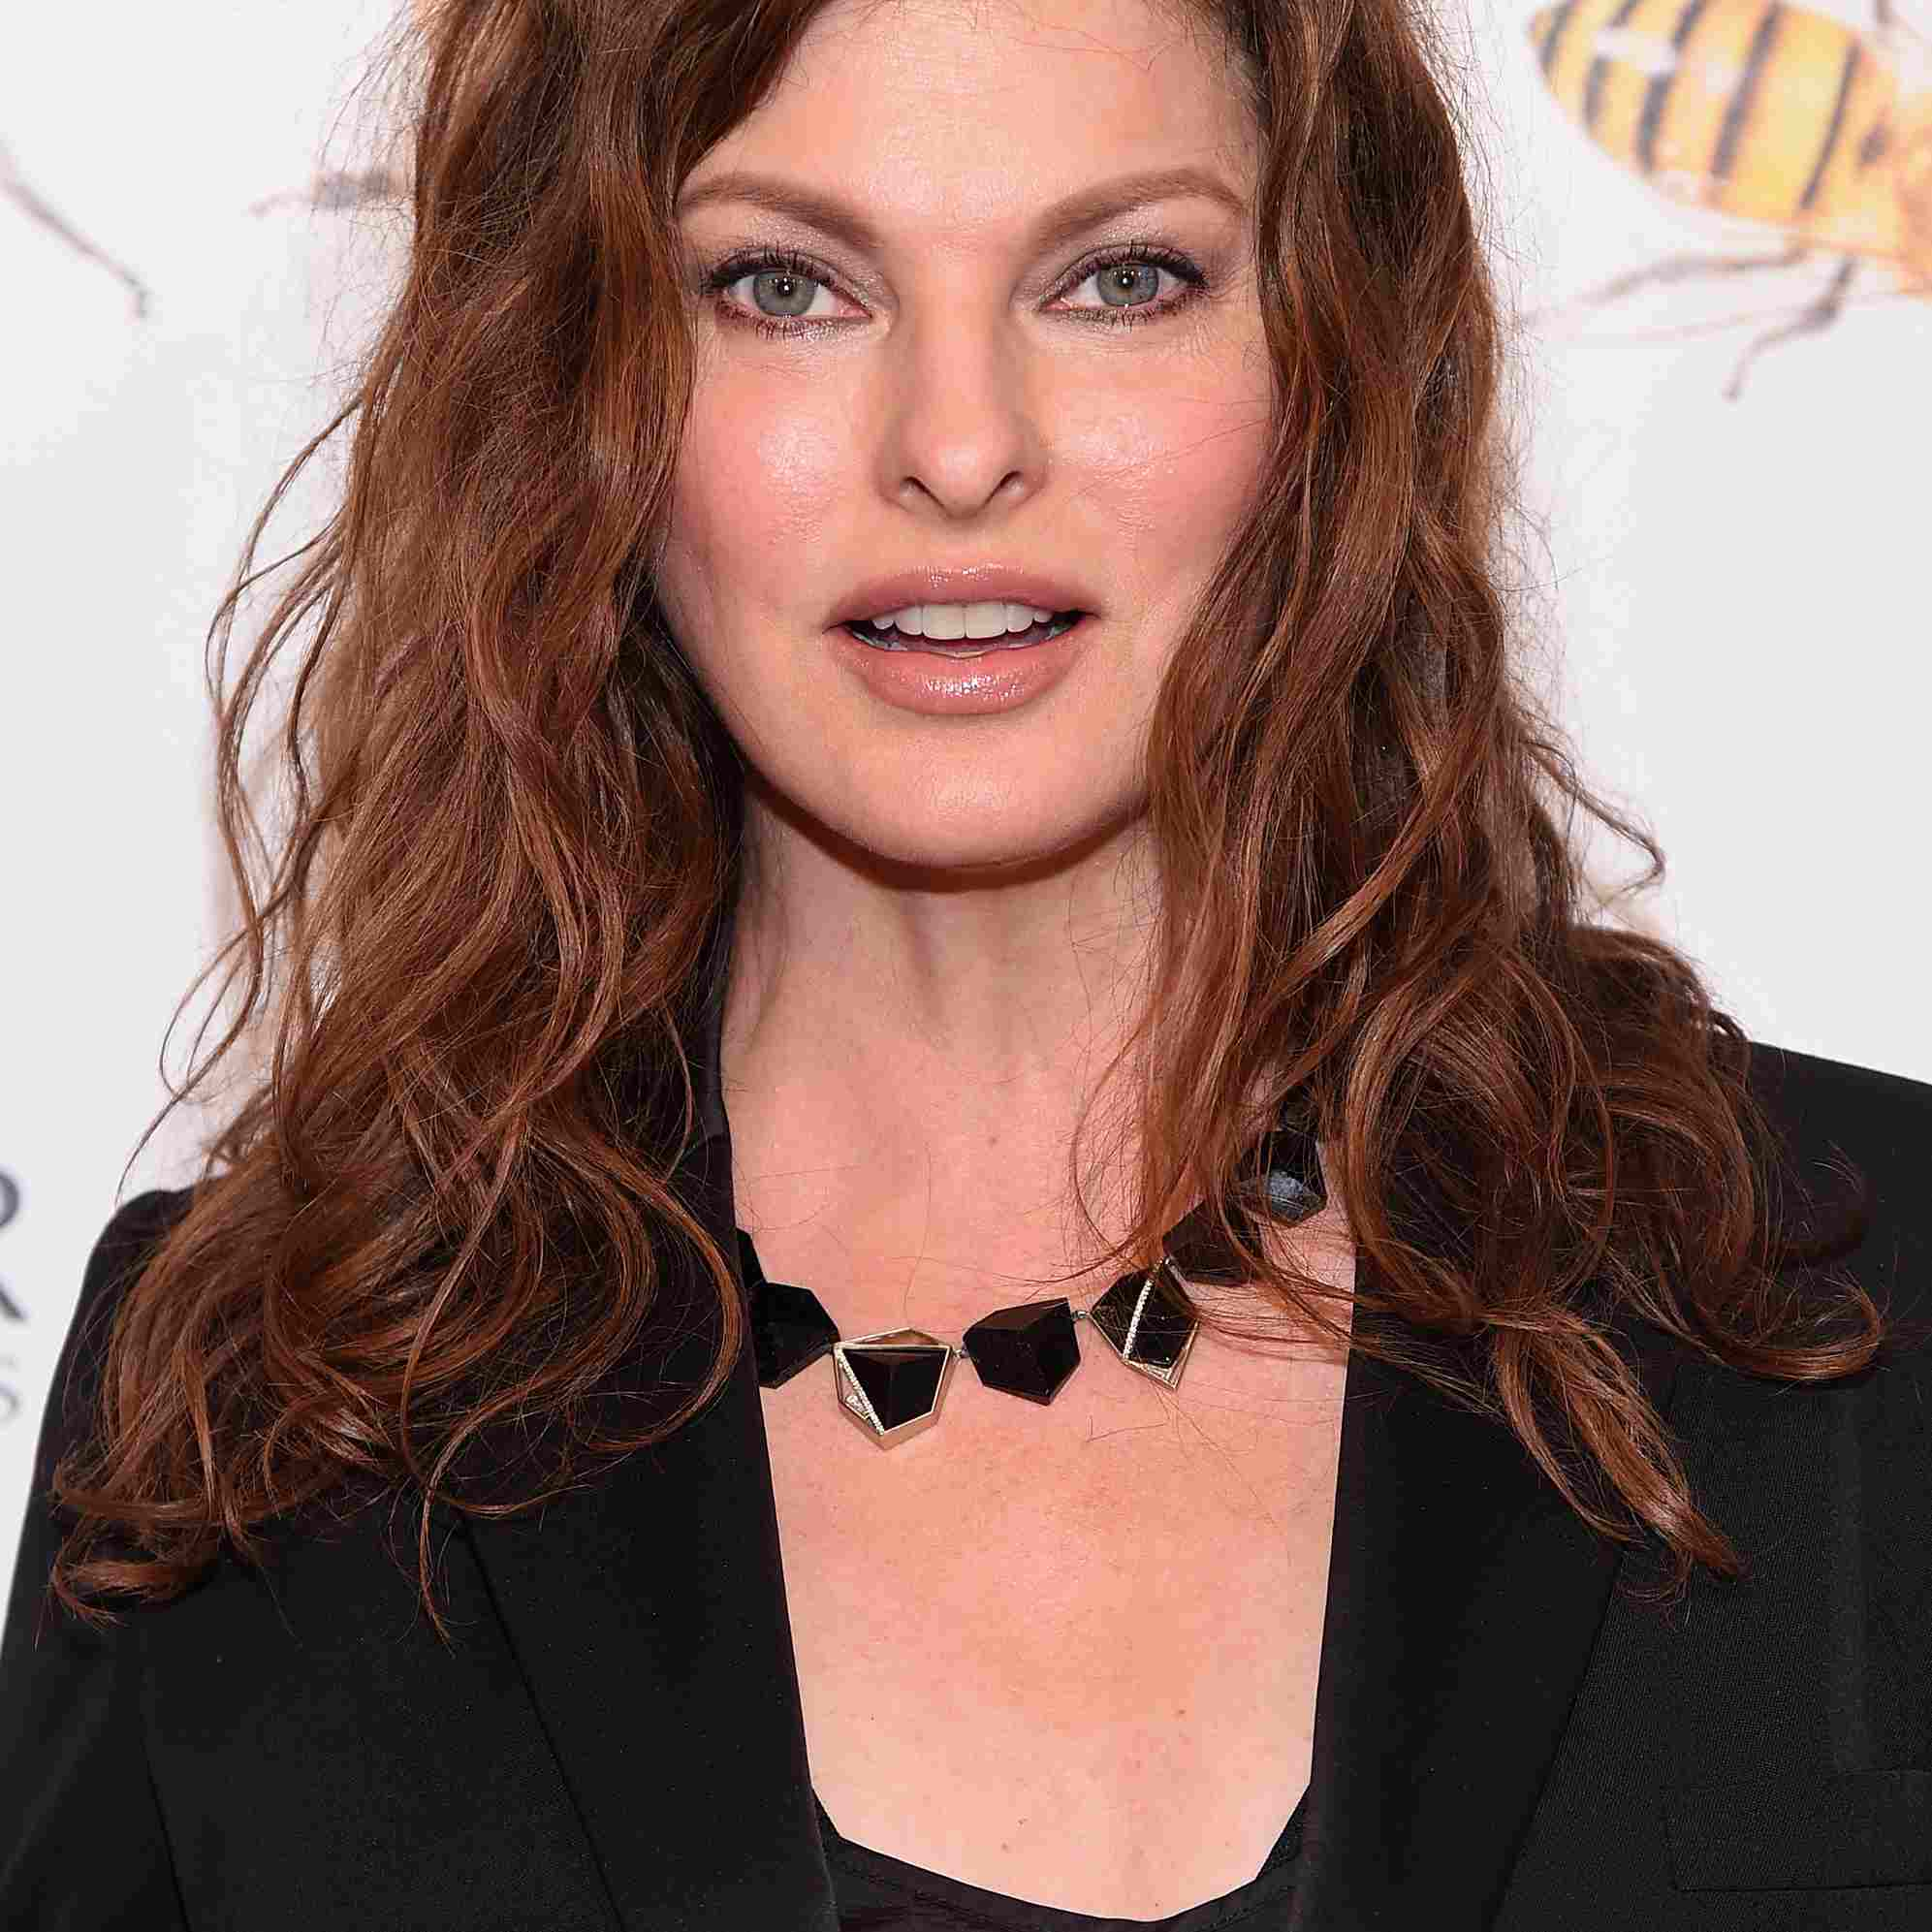 Linda Evangelista, Co-Chair of the Fragrance Foundation Awards attends the 2015 Fragrance Foundation Awards at Alice Tully Hall at Lincoln Center on June 17, 2015